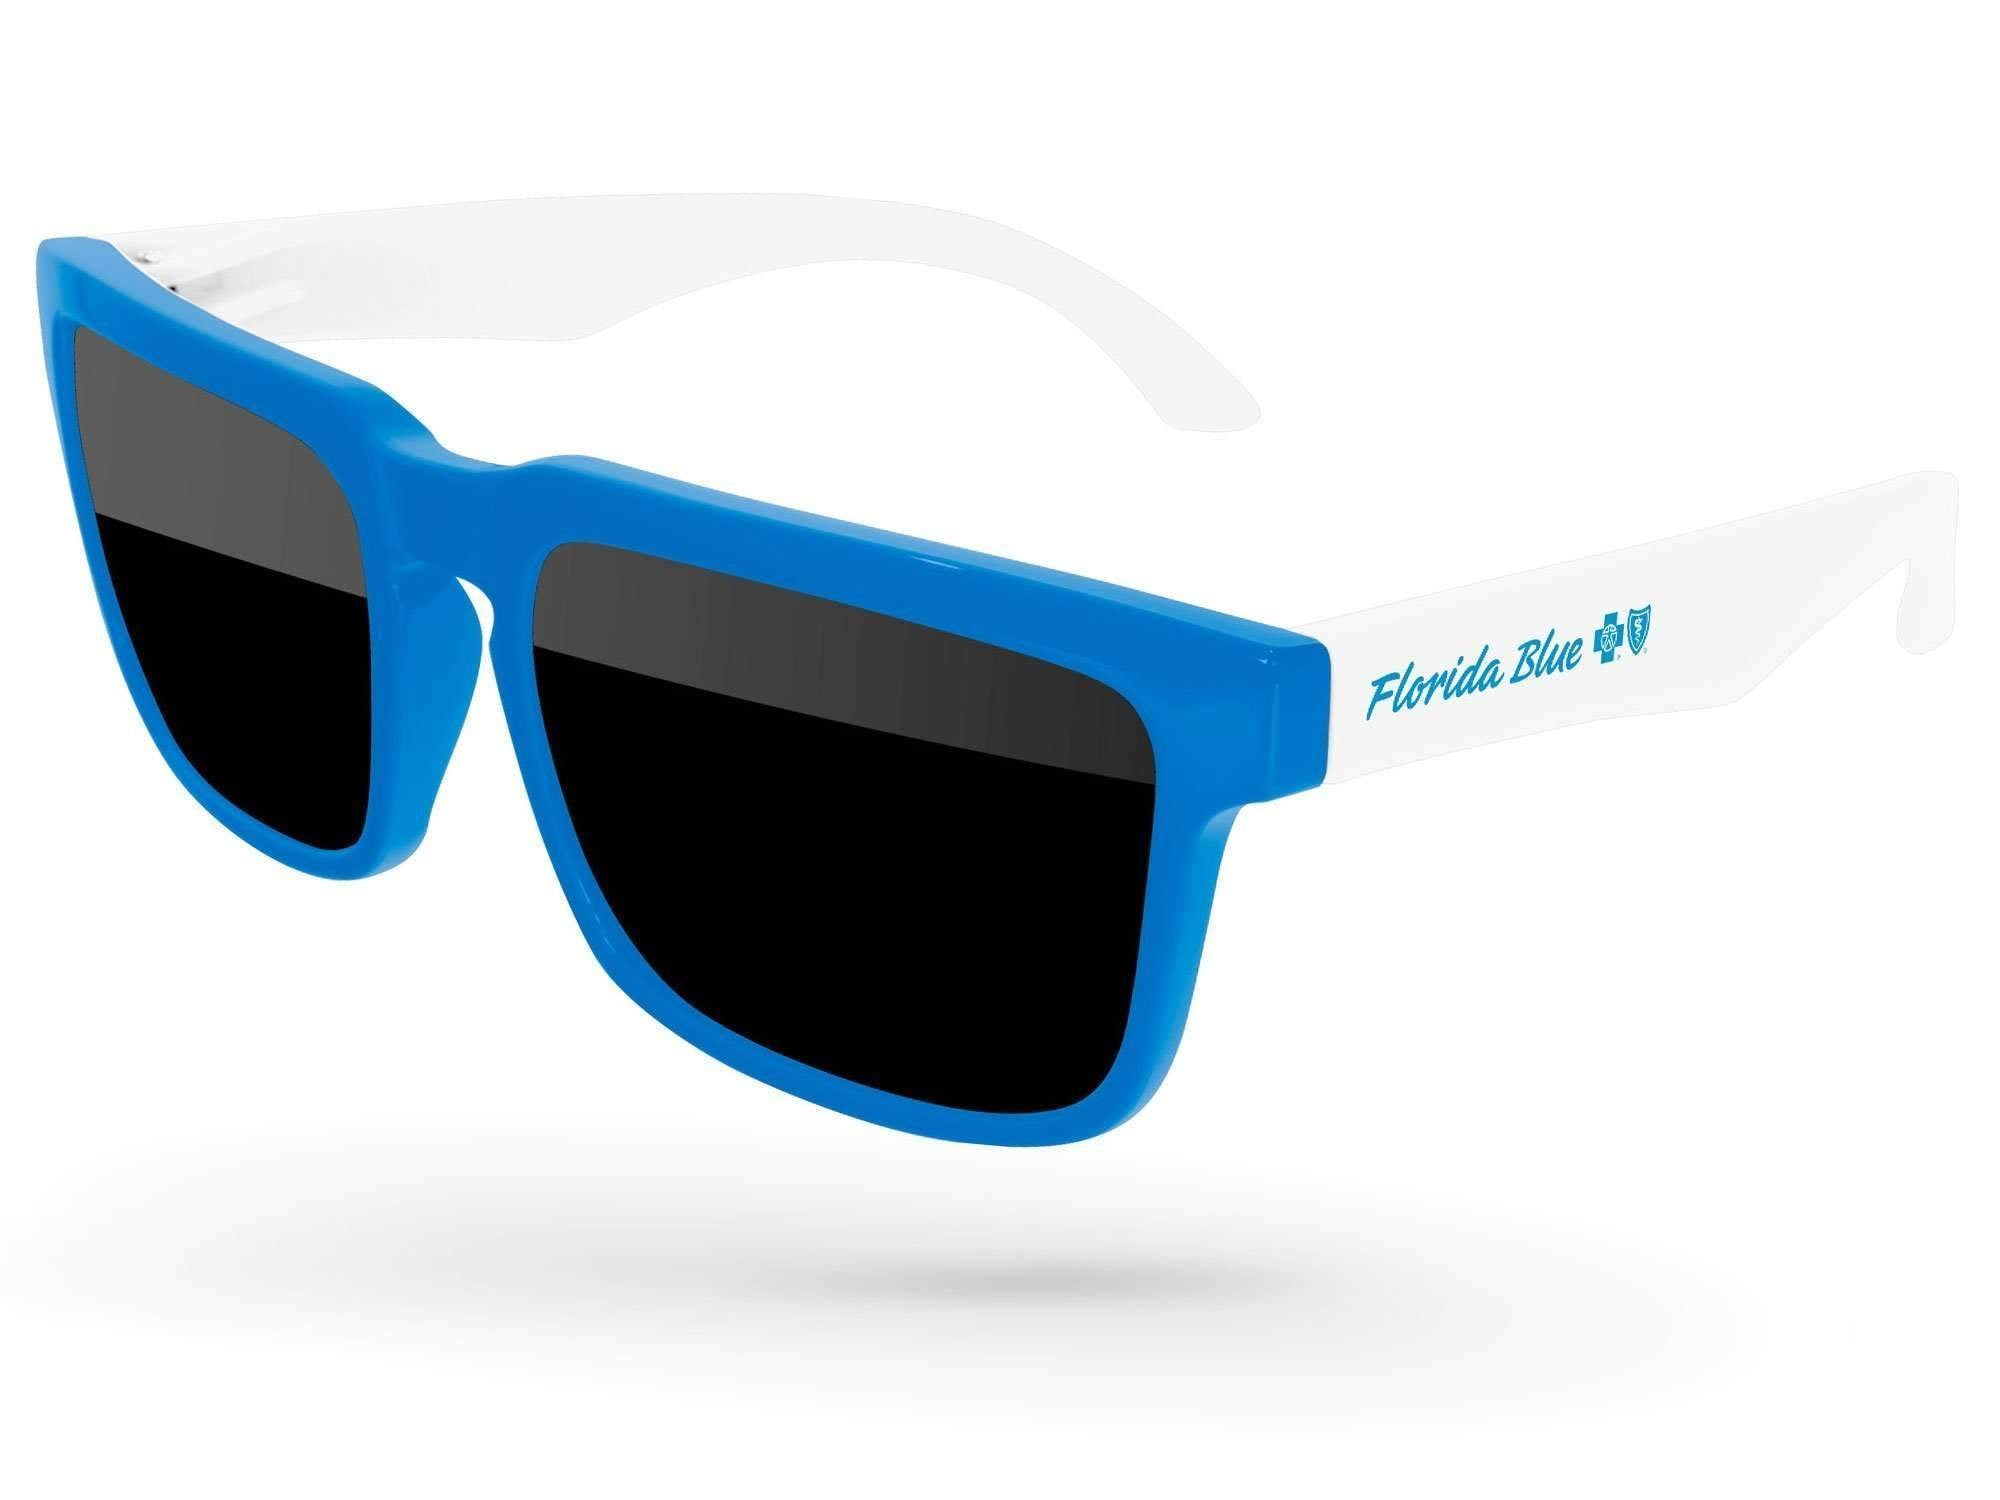 HD012 - 2-tone Heat Promotional Sunglasses w/ 1-color temple imprint